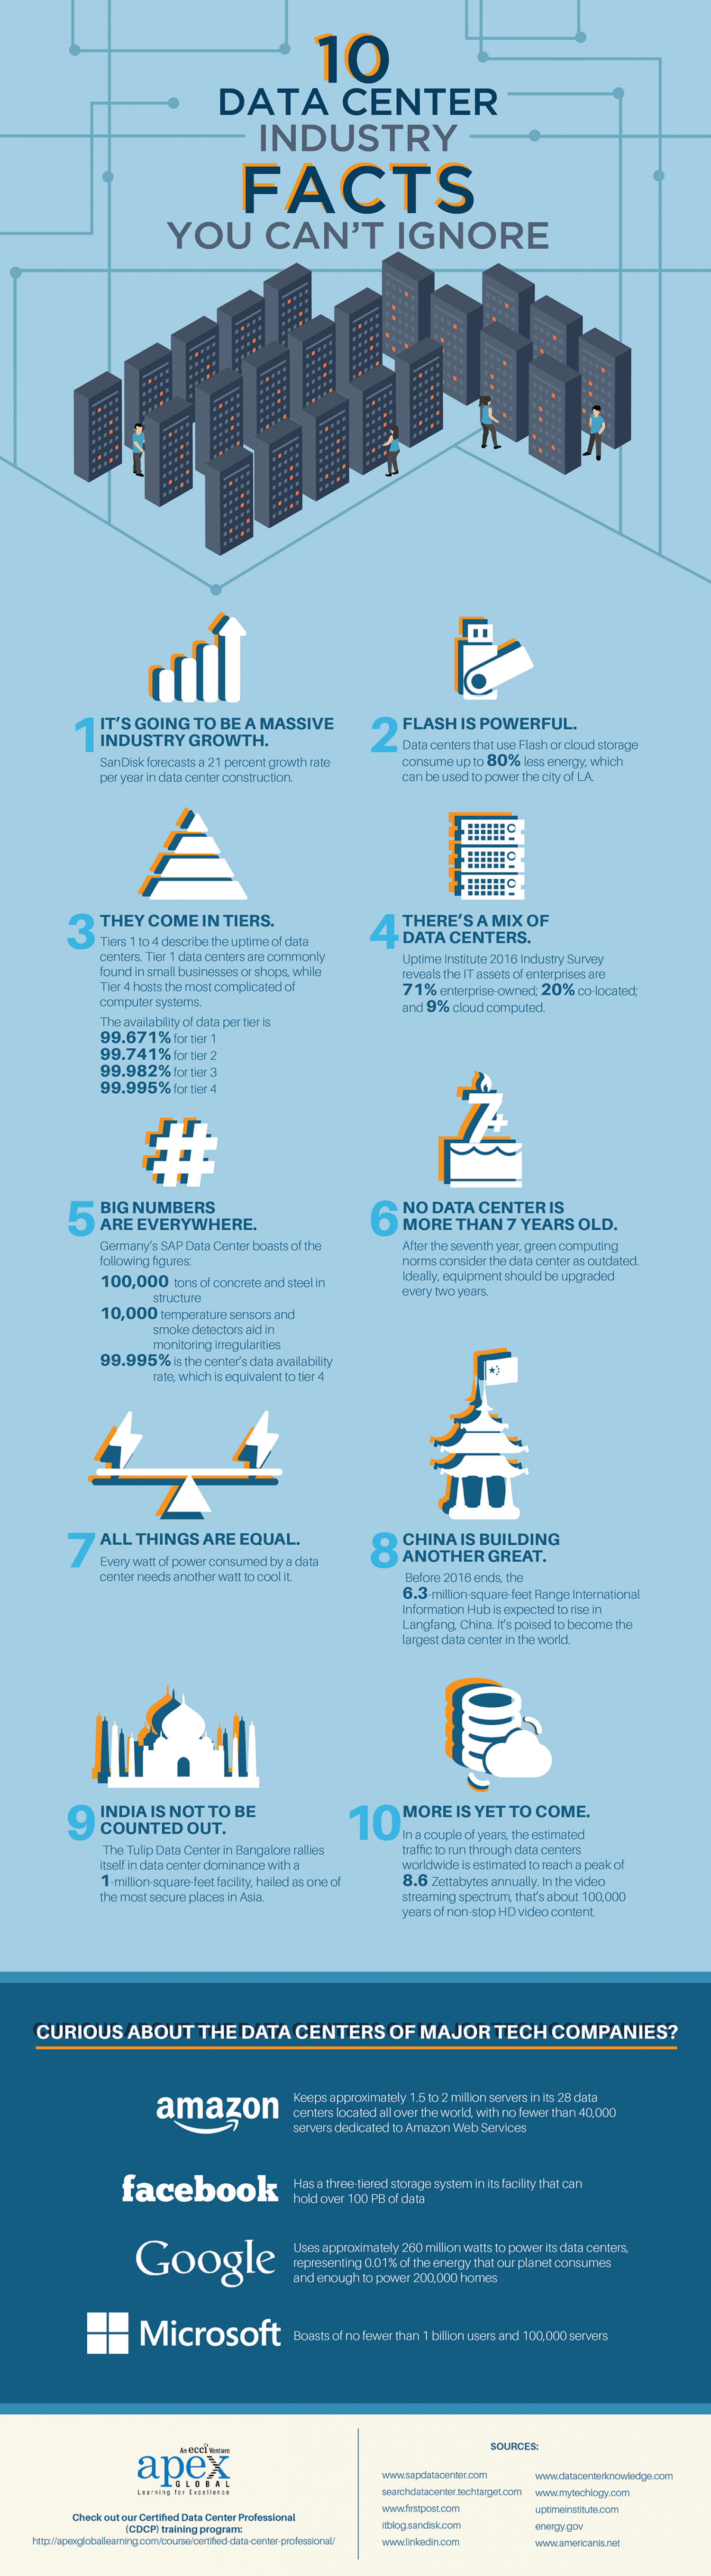 10 Data Center Industry Facts You Can't Ignore Infographic